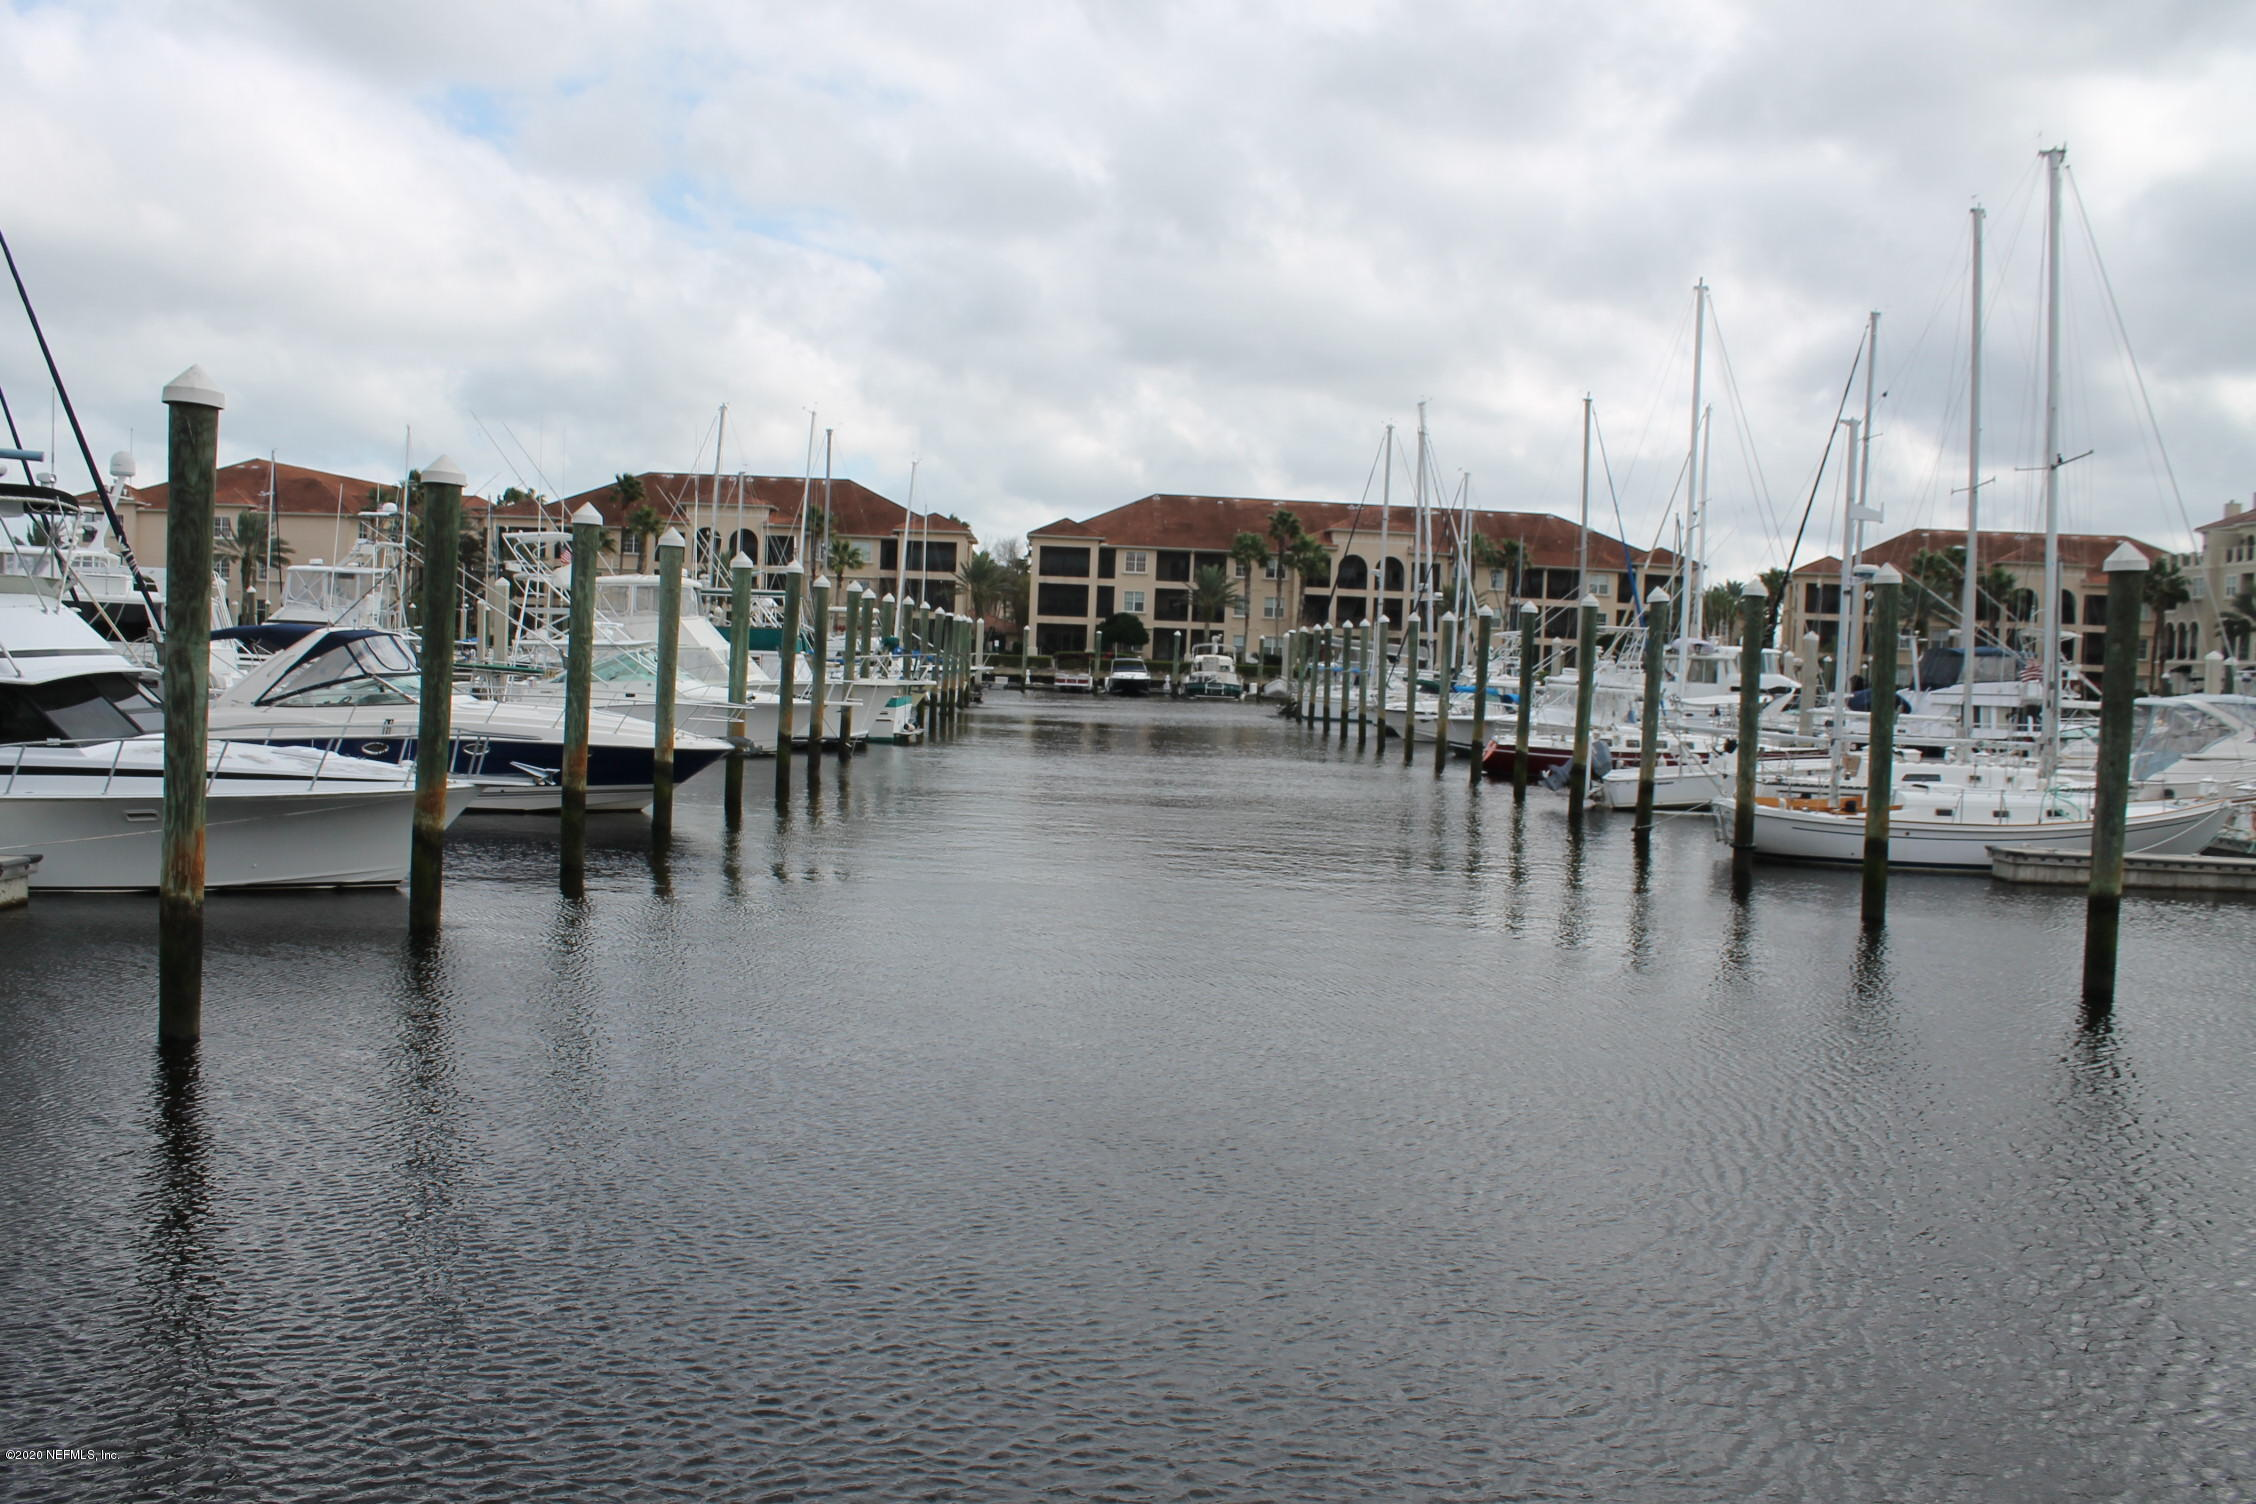 0 ATLANTIC, JACKSONVILLE, FLORIDA 32225, 1 Bedroom Bedrooms, ,1 BathroomBathrooms,Residential,For sale,ATLANTIC,1034083